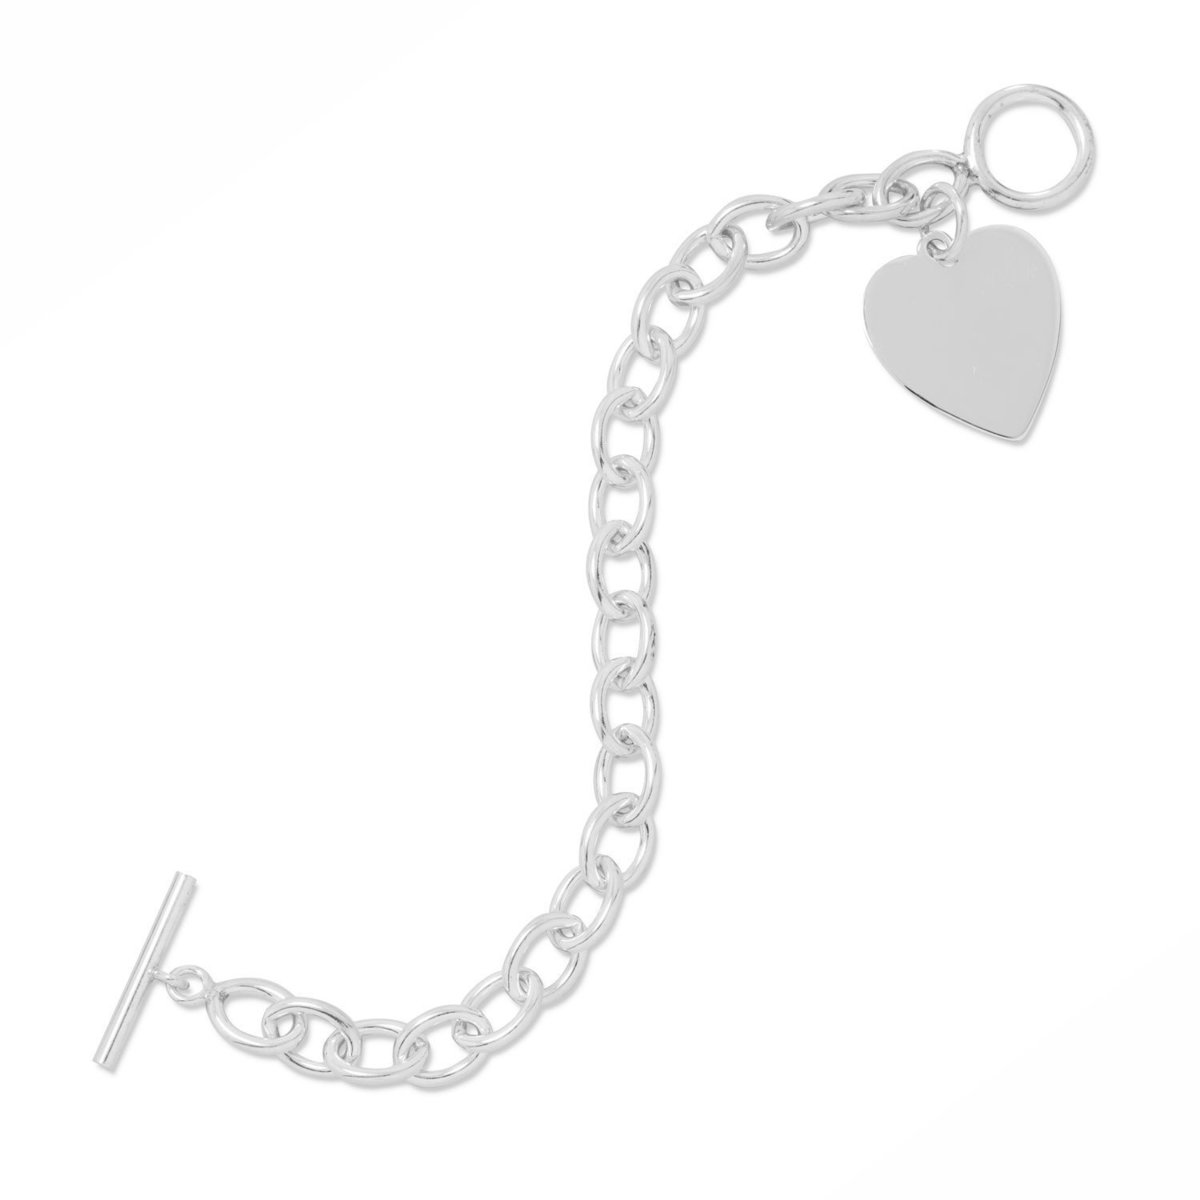 "7"" Toggle Bracelet with Engravable Heart Tag 925 Sterling Silver"